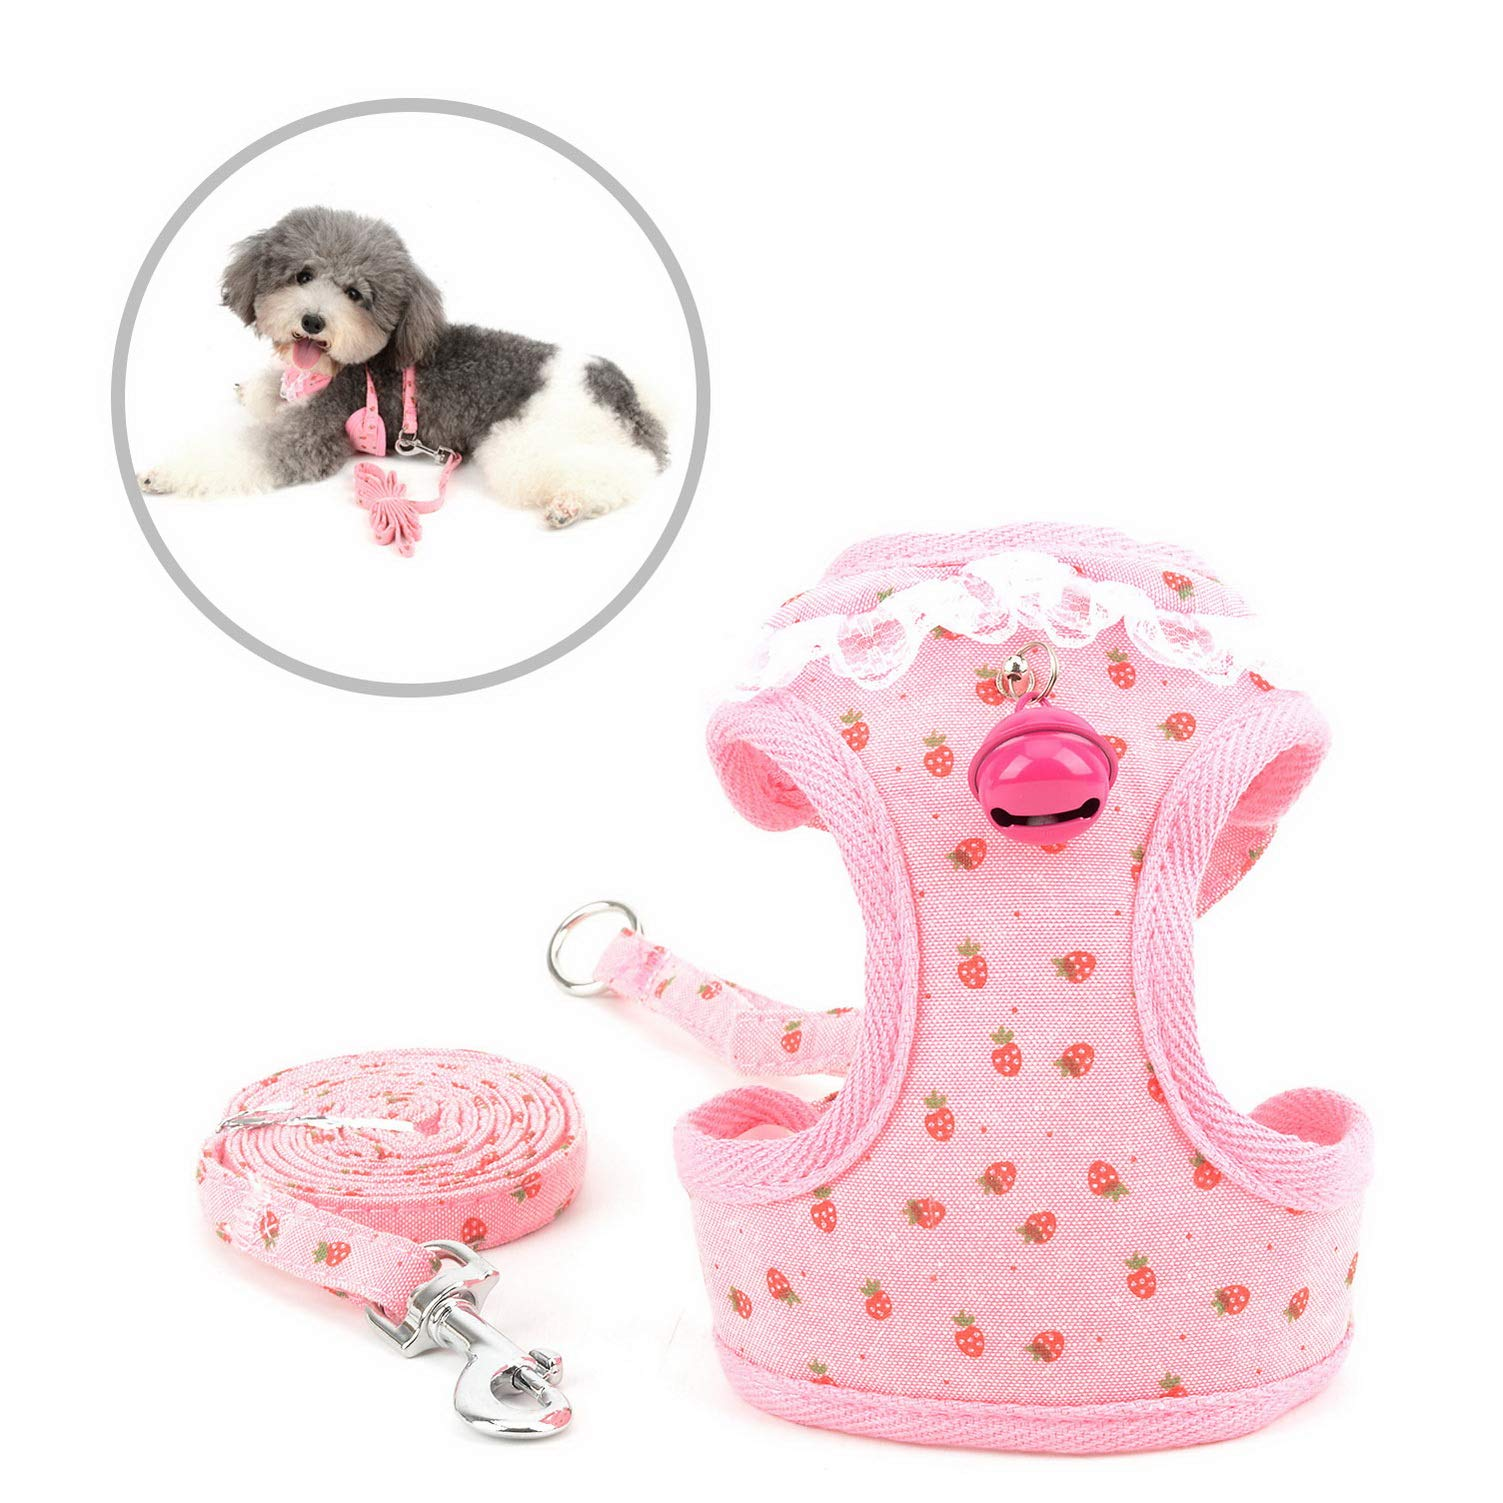 Lace Trim Collar Bell Girls Small Dog Vest Harness and Leash Set for Walking Escape Proof Kitten Cat Harness No Pull Soft Mesh Padded Adjustble Puppy Summer Clothes,Pink Strawberry,Medium